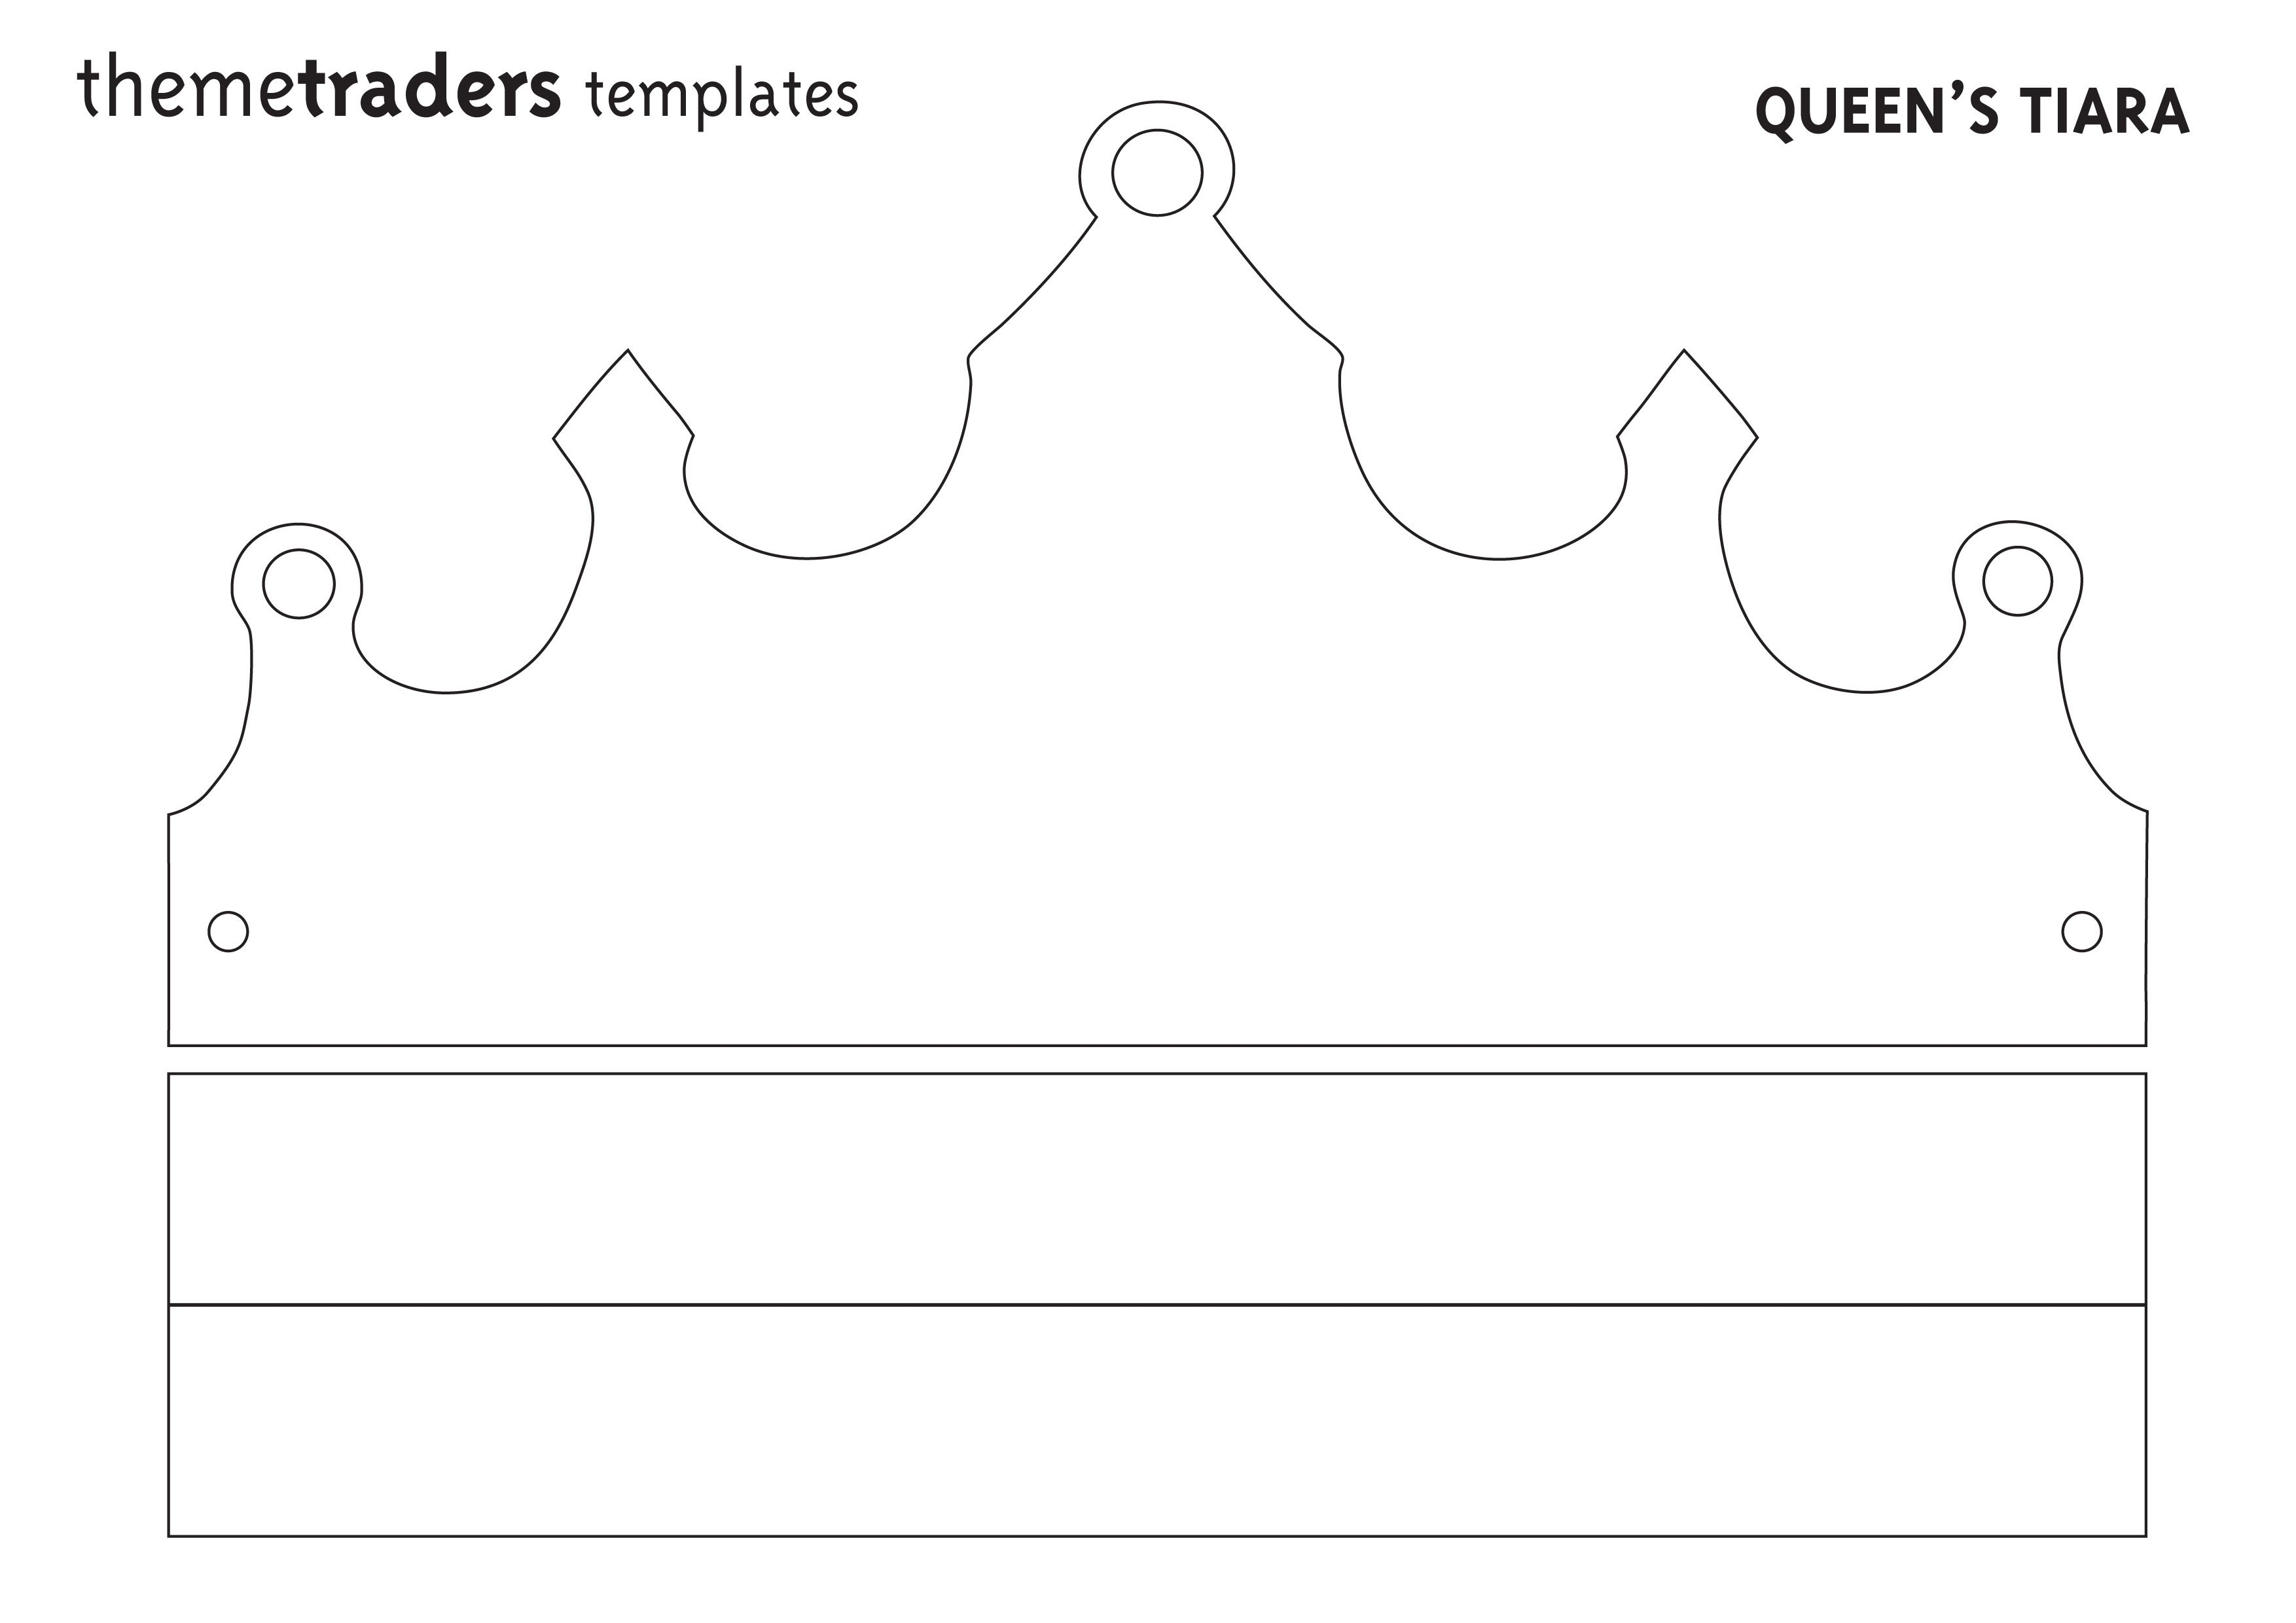 Queens Tiara Template From Themetraders